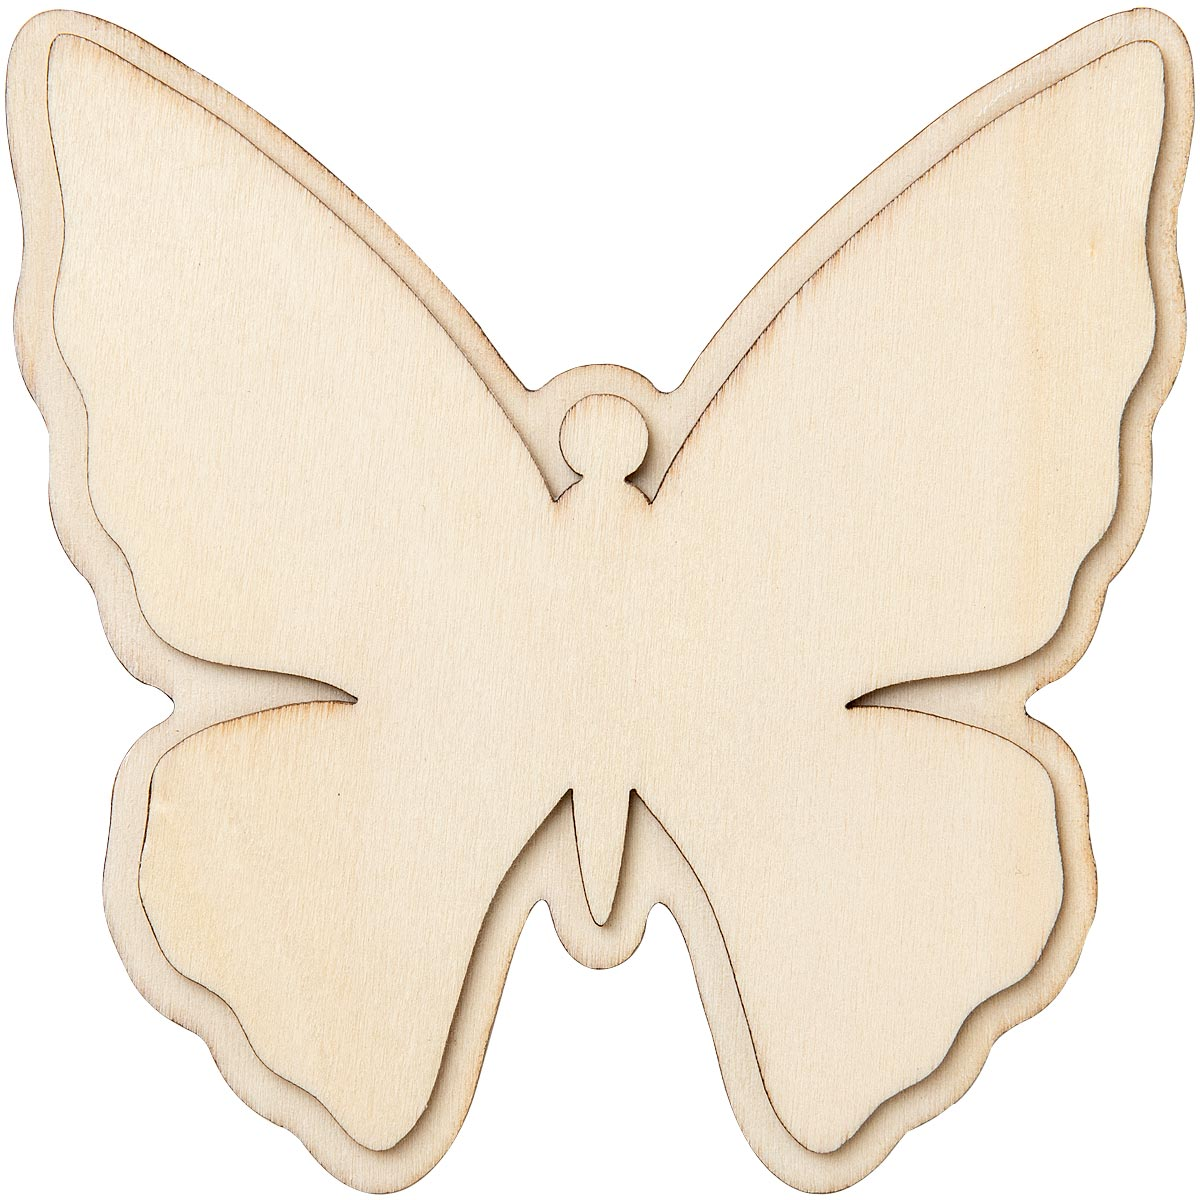 Plaid ® Wood Surfaces - Unpainted Layered Shapes - Butterfly - 44973